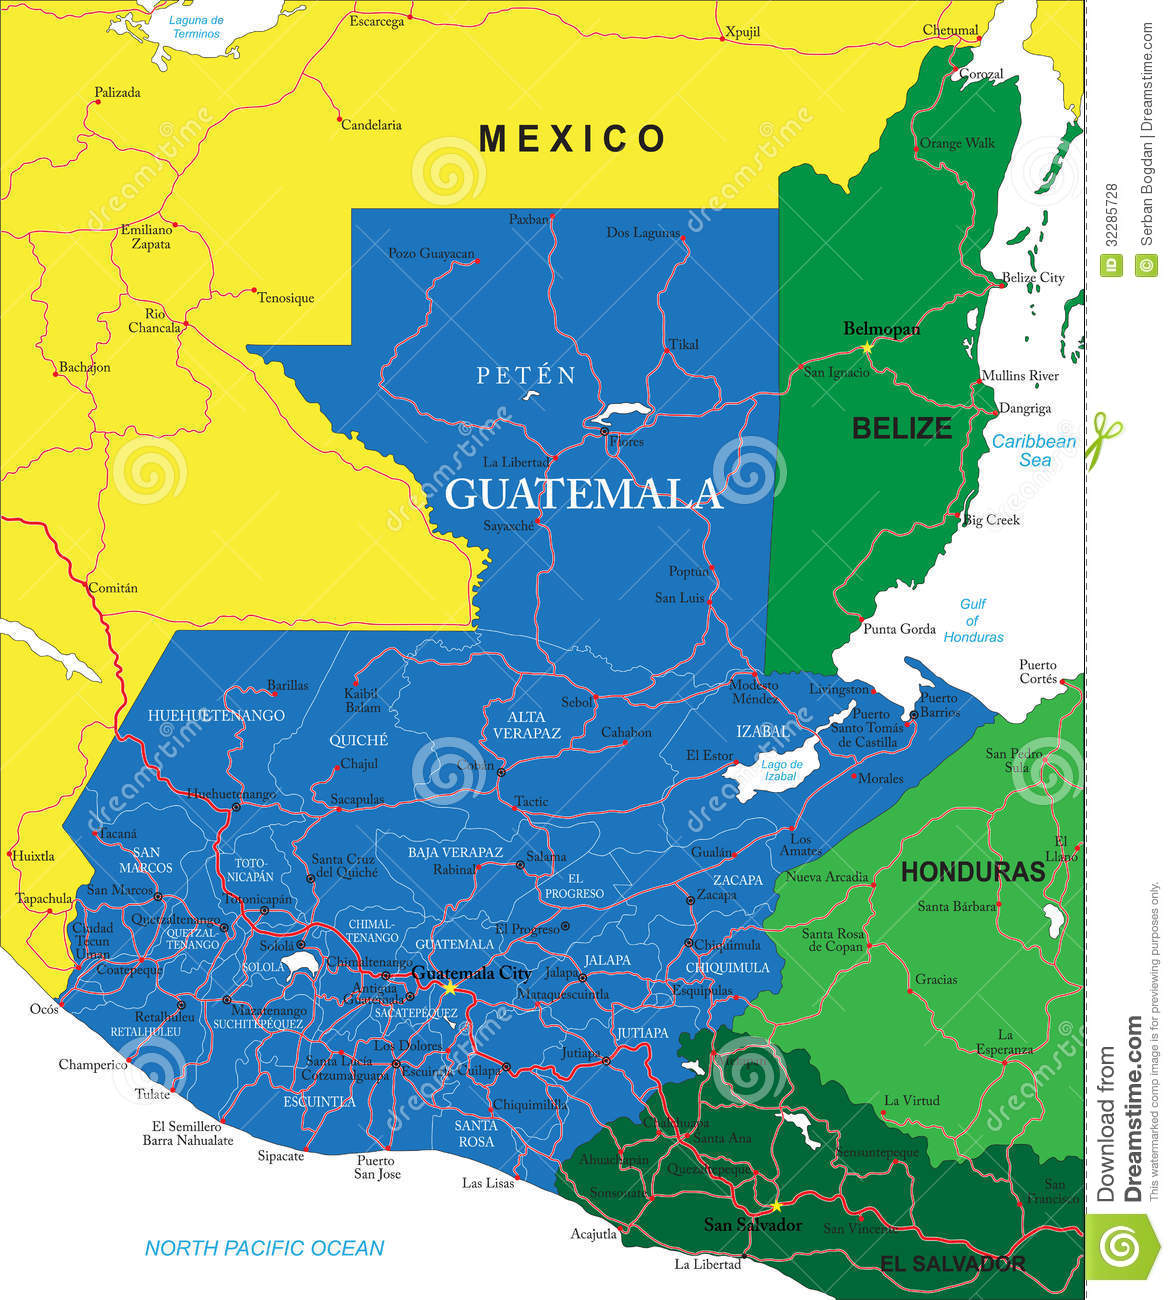 the history and background of guatemala The mayans of guatemala are the only indigenous culture that constitutes a   mayan history shows strong evidence of connections to the more ancient  of  discrimination and exclusion based on their ethnic background, dress and  language.